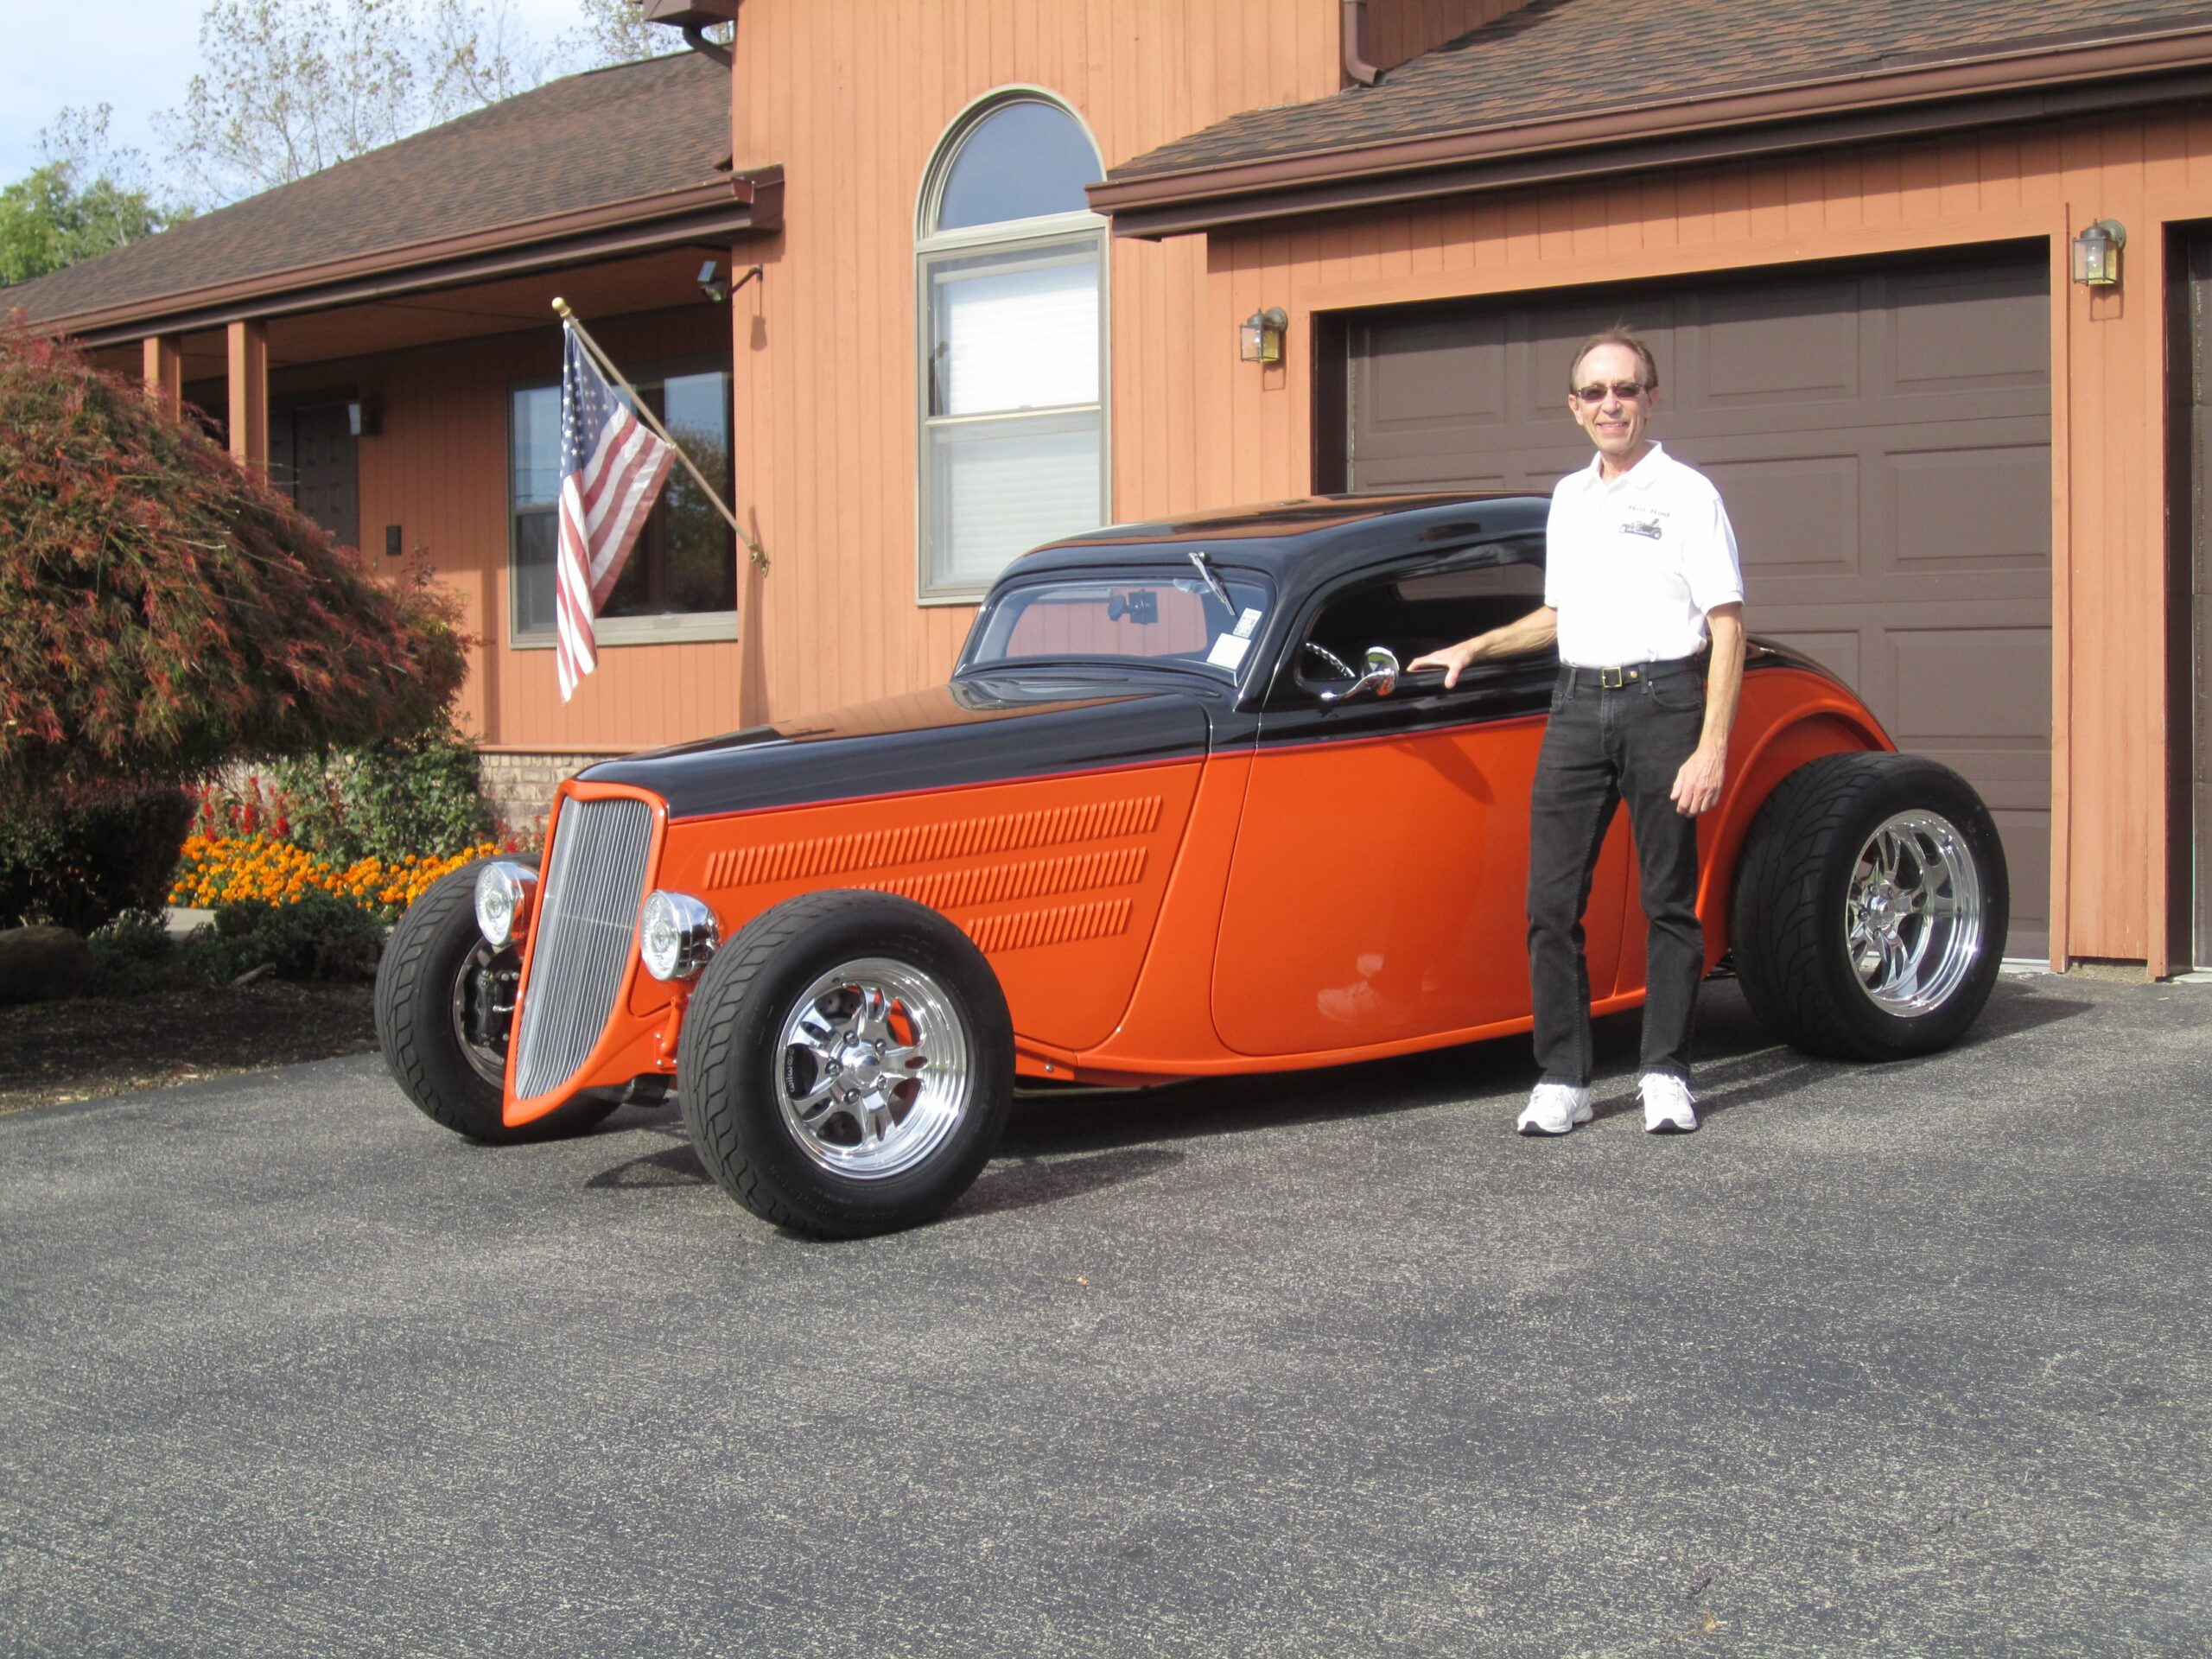 Gary Yanni - Webster, NY - 1933 Ford 3 Window Coupe -